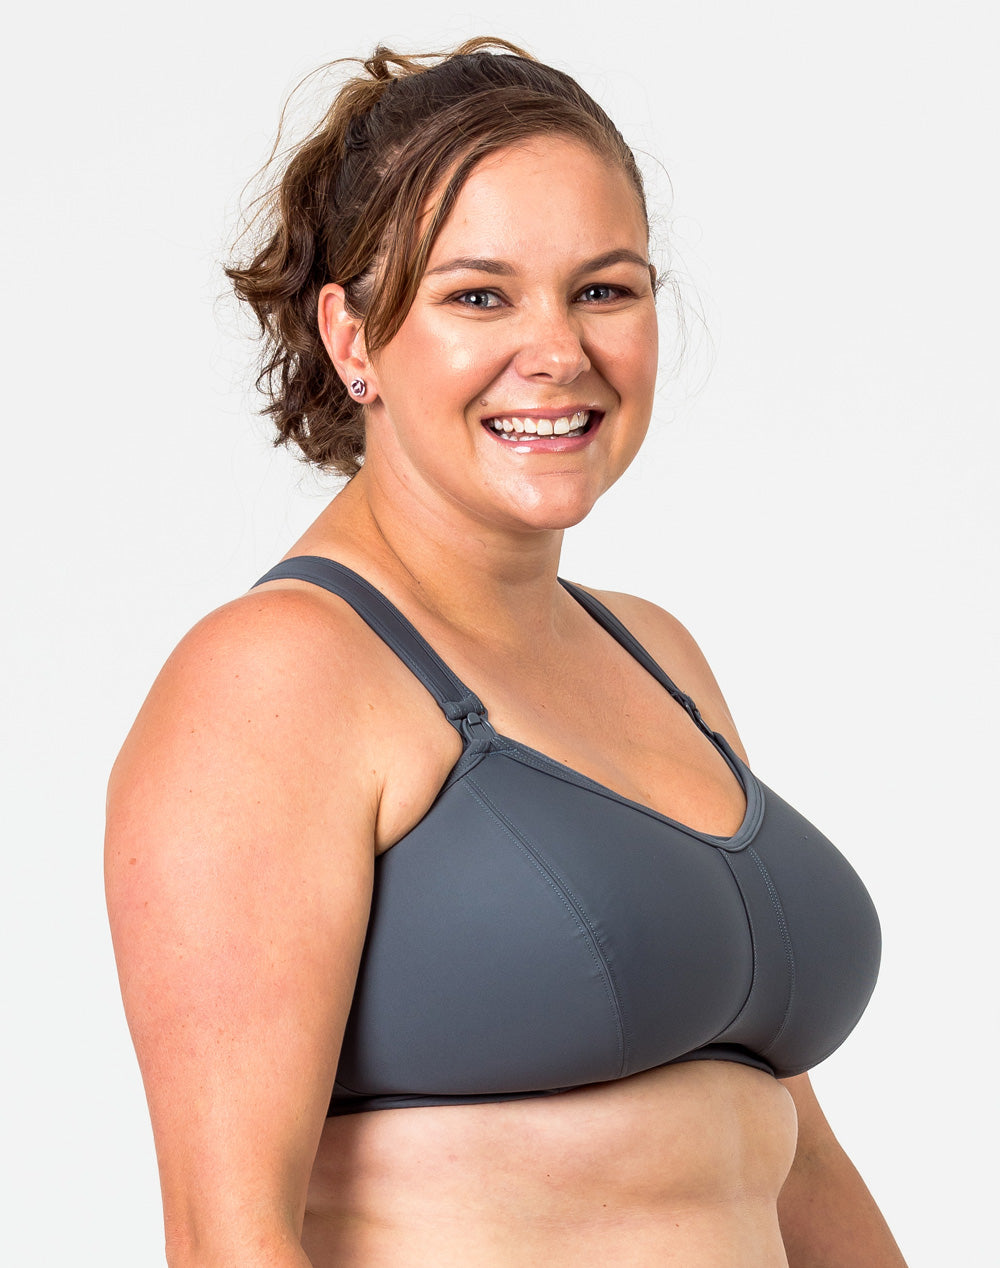 side view of an active mom wearing a supportive plus size nursing bra in a charcoal color